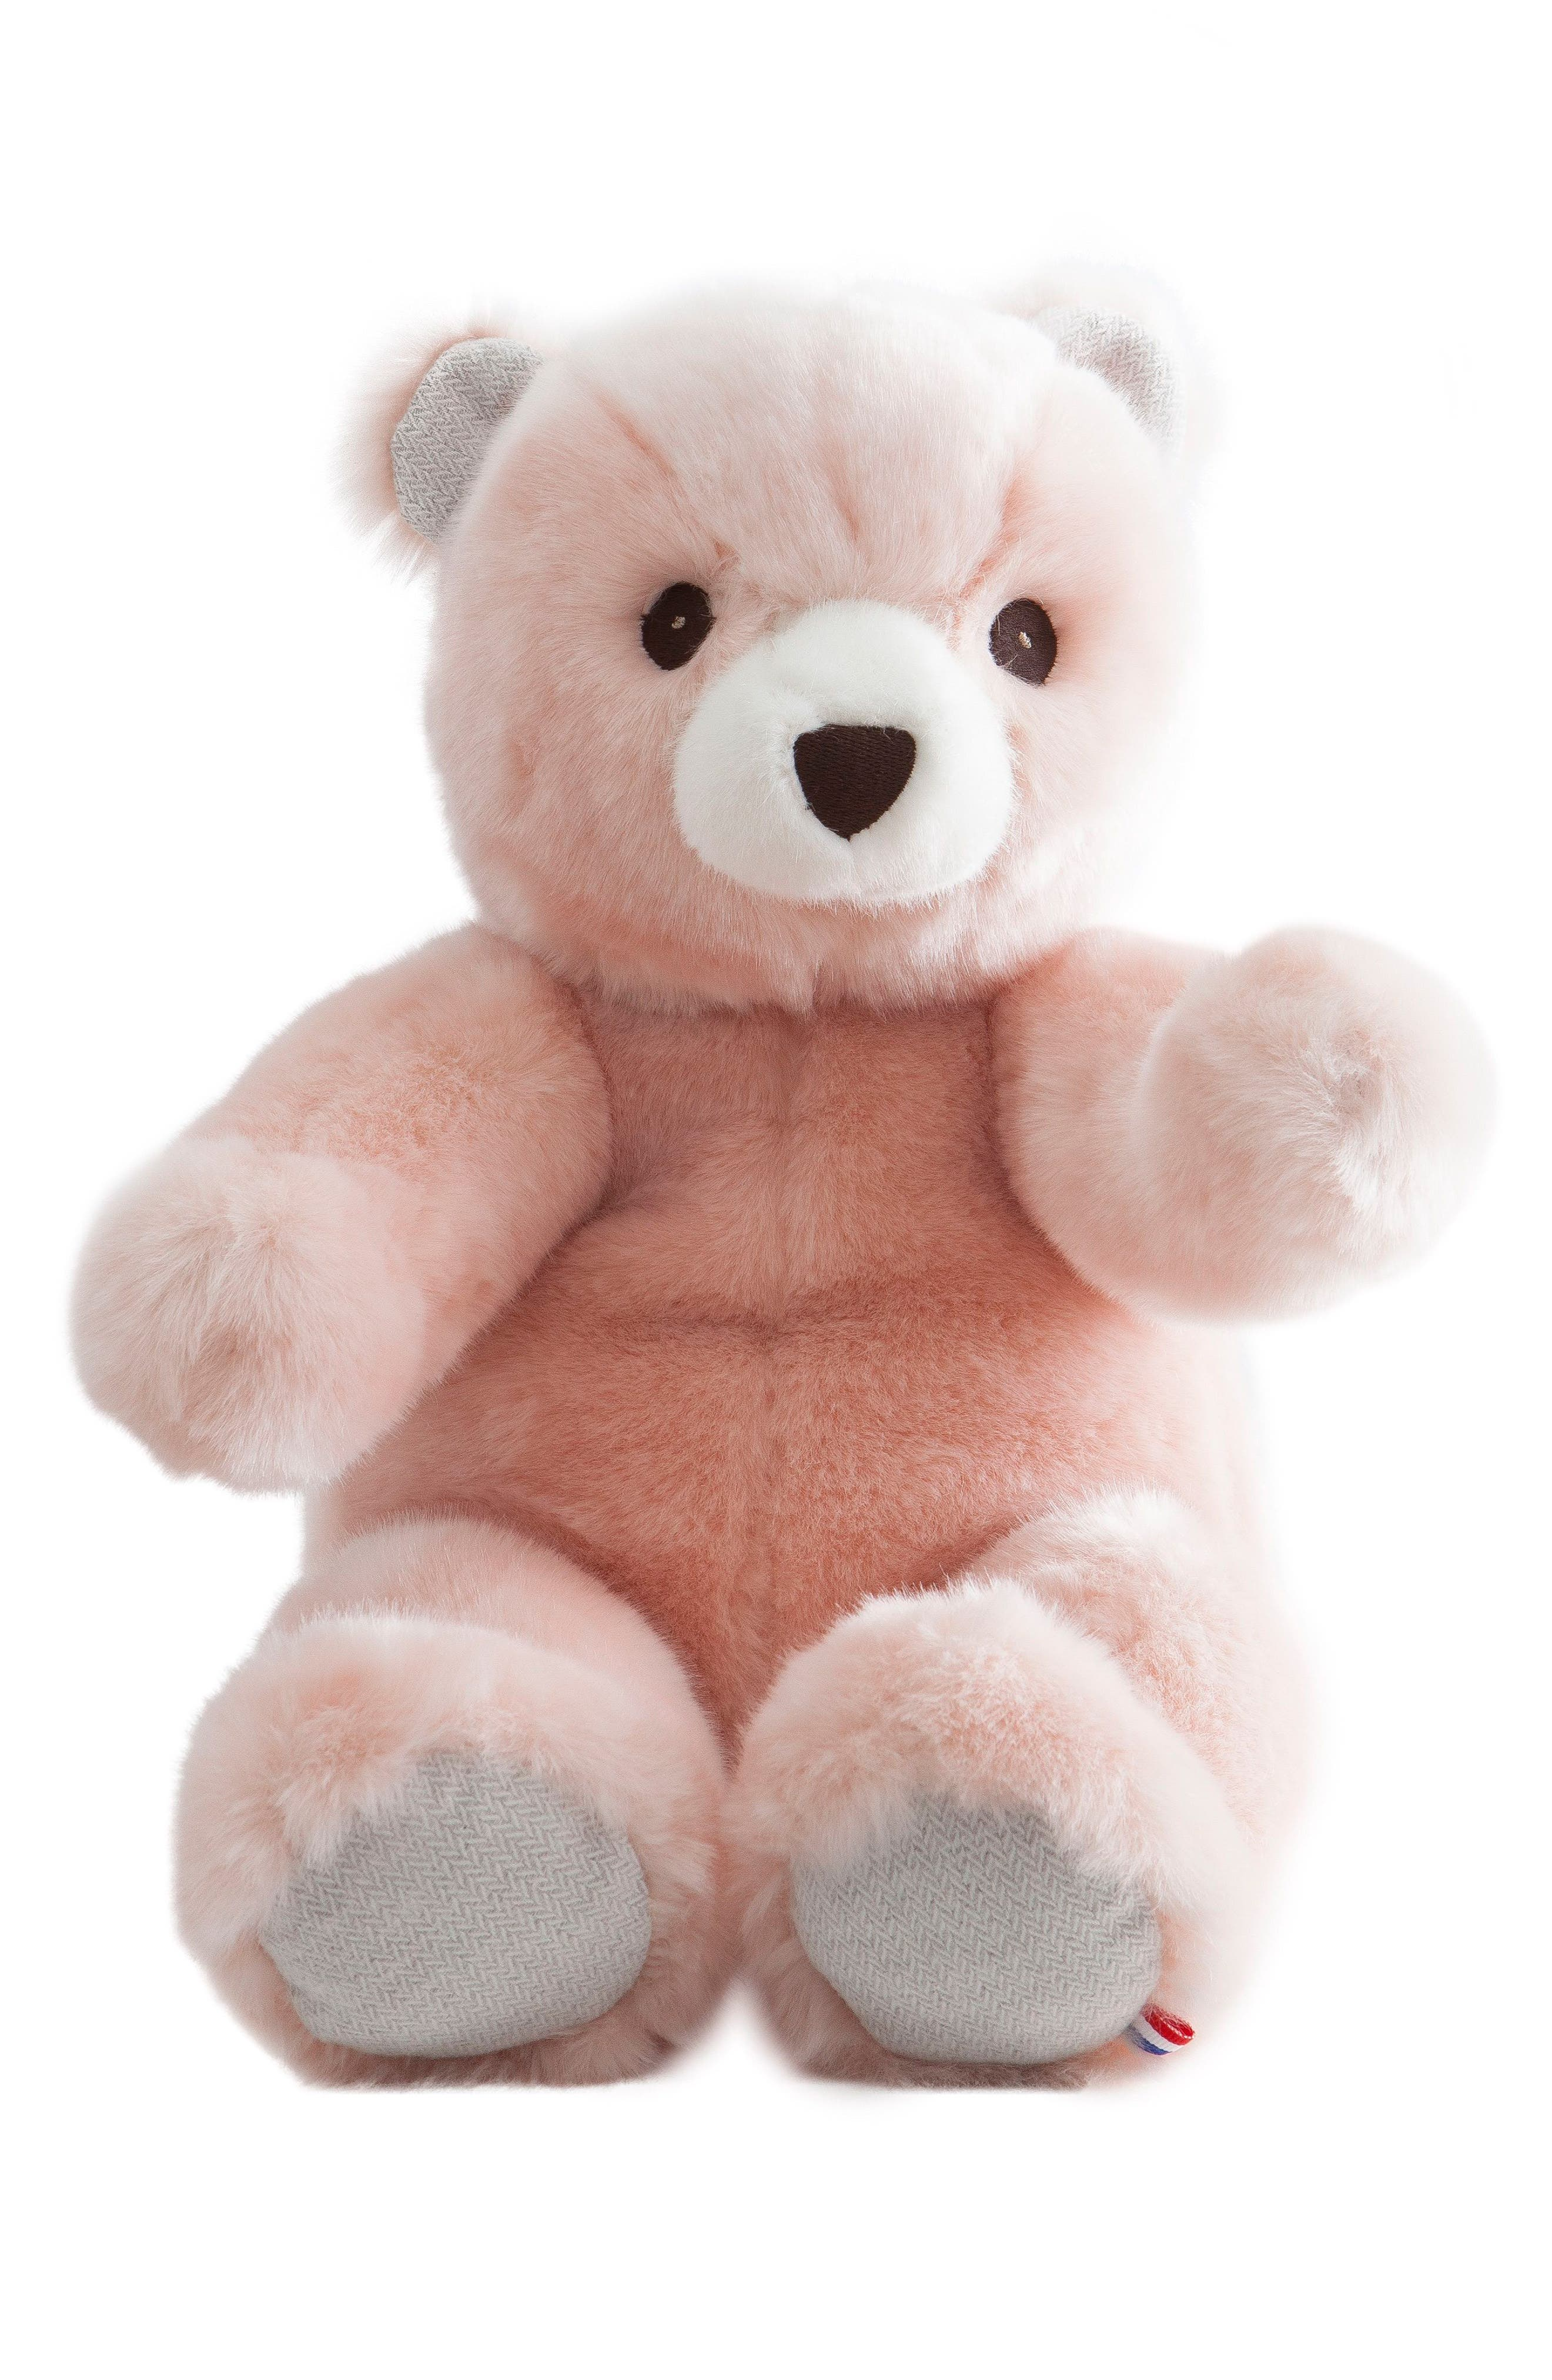 Alternate Image 1 Selected - Pamplemousse Peluches Robert the Bear Stuffed Animal